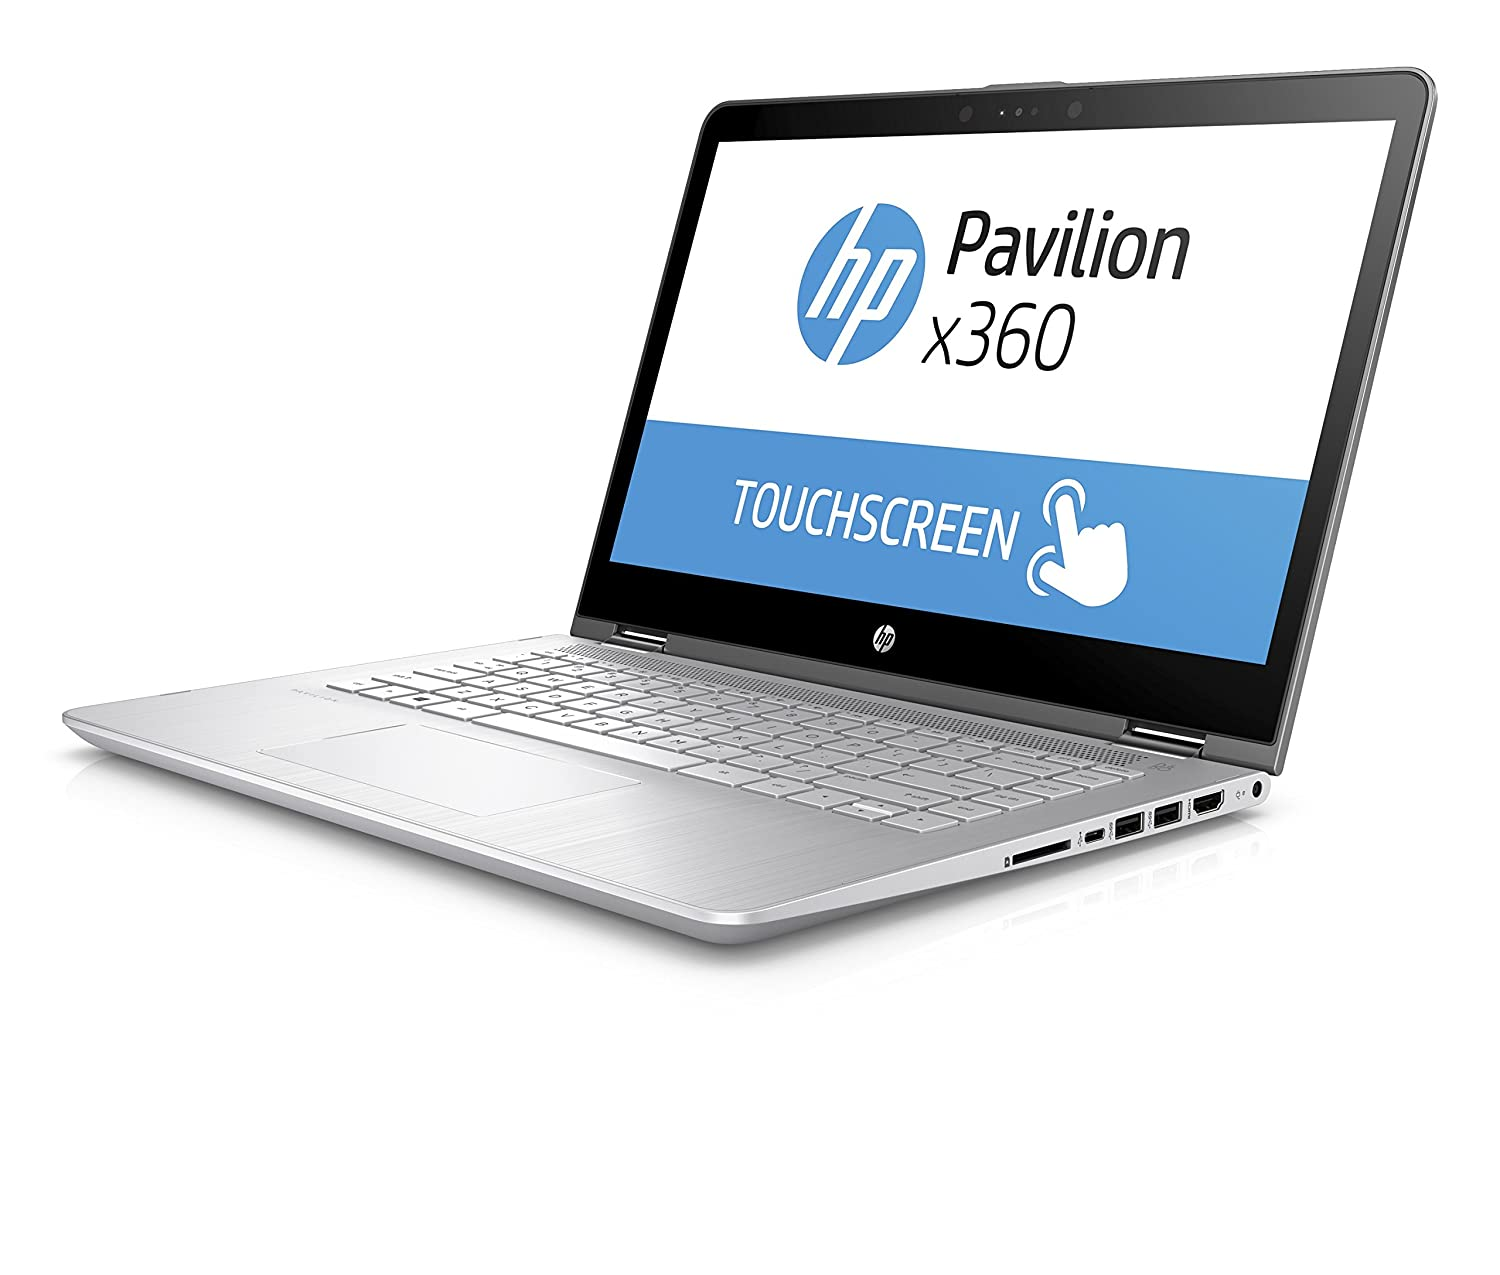 HP Pavilion X360 buying guide: Pros and cons of this laptop